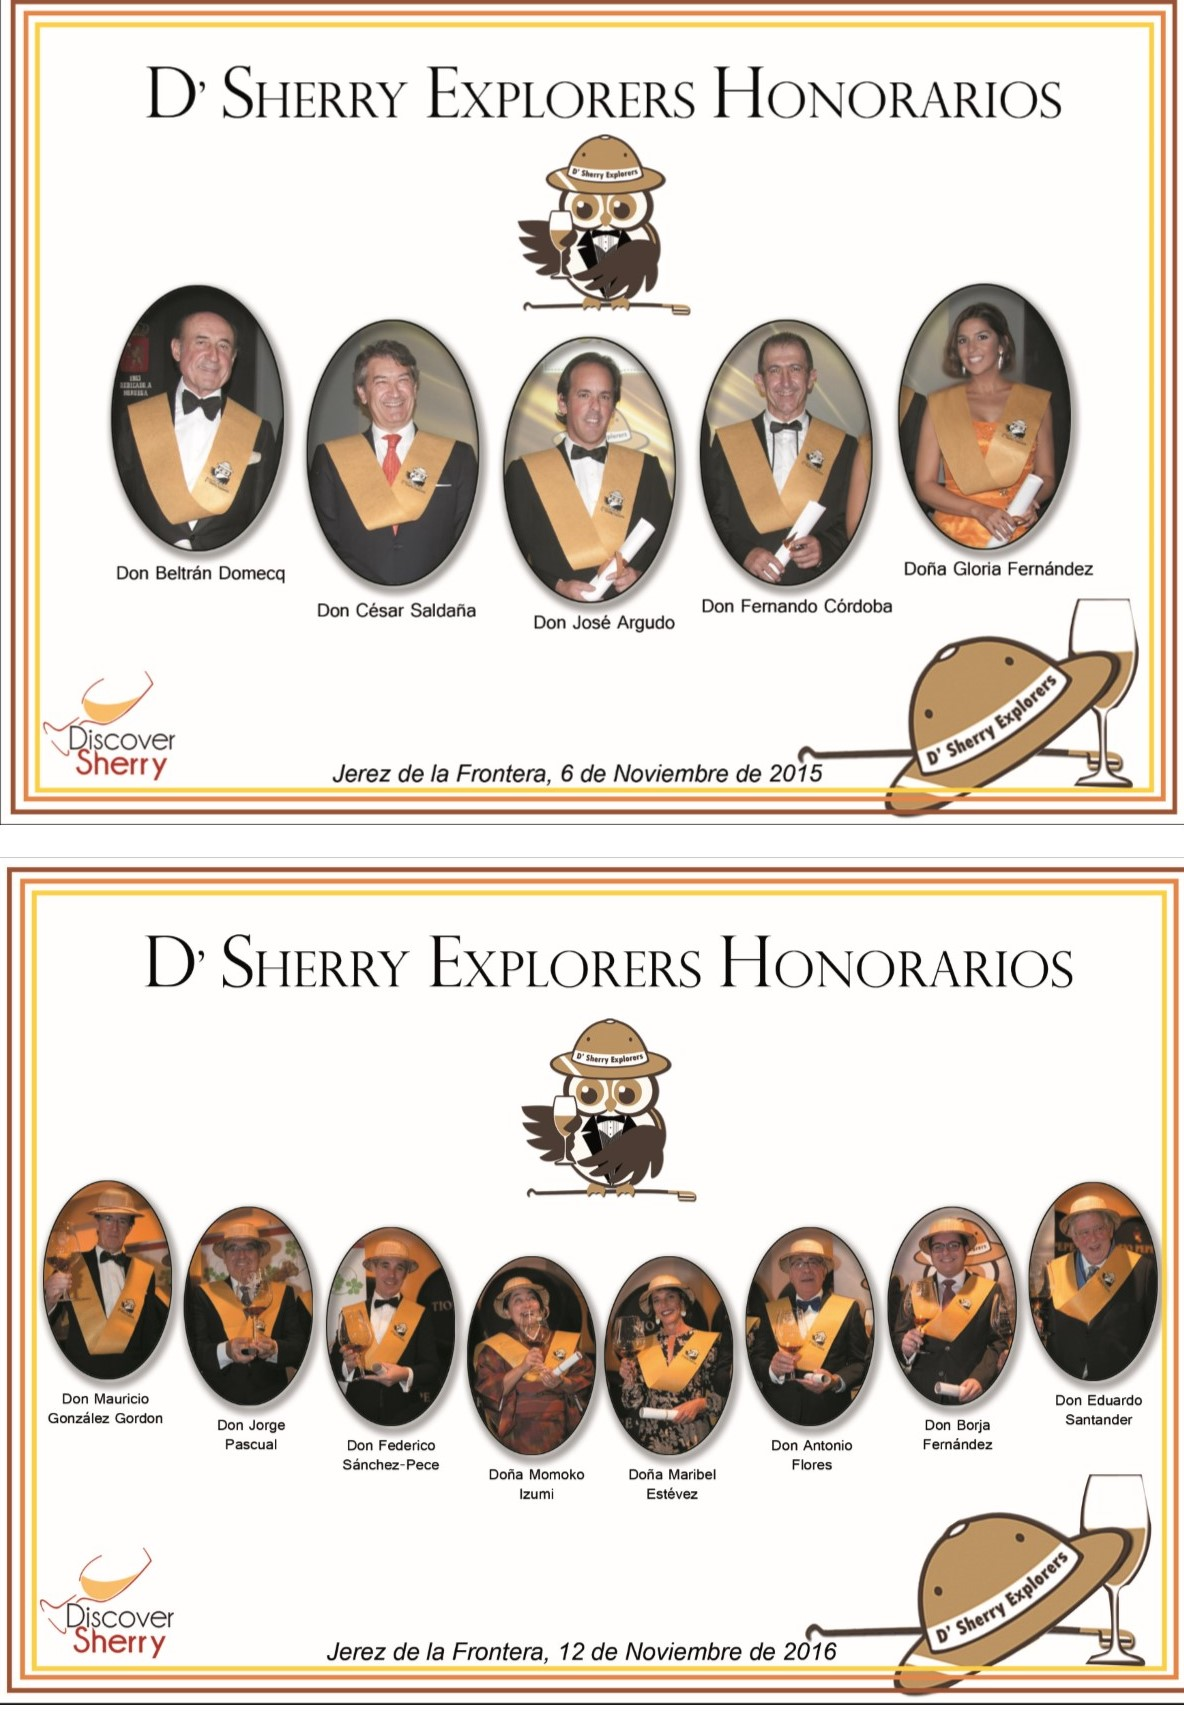 Sherry Explorers Honorarios 2015-2016 / 2015-2016 Honorary Sherry Explorers